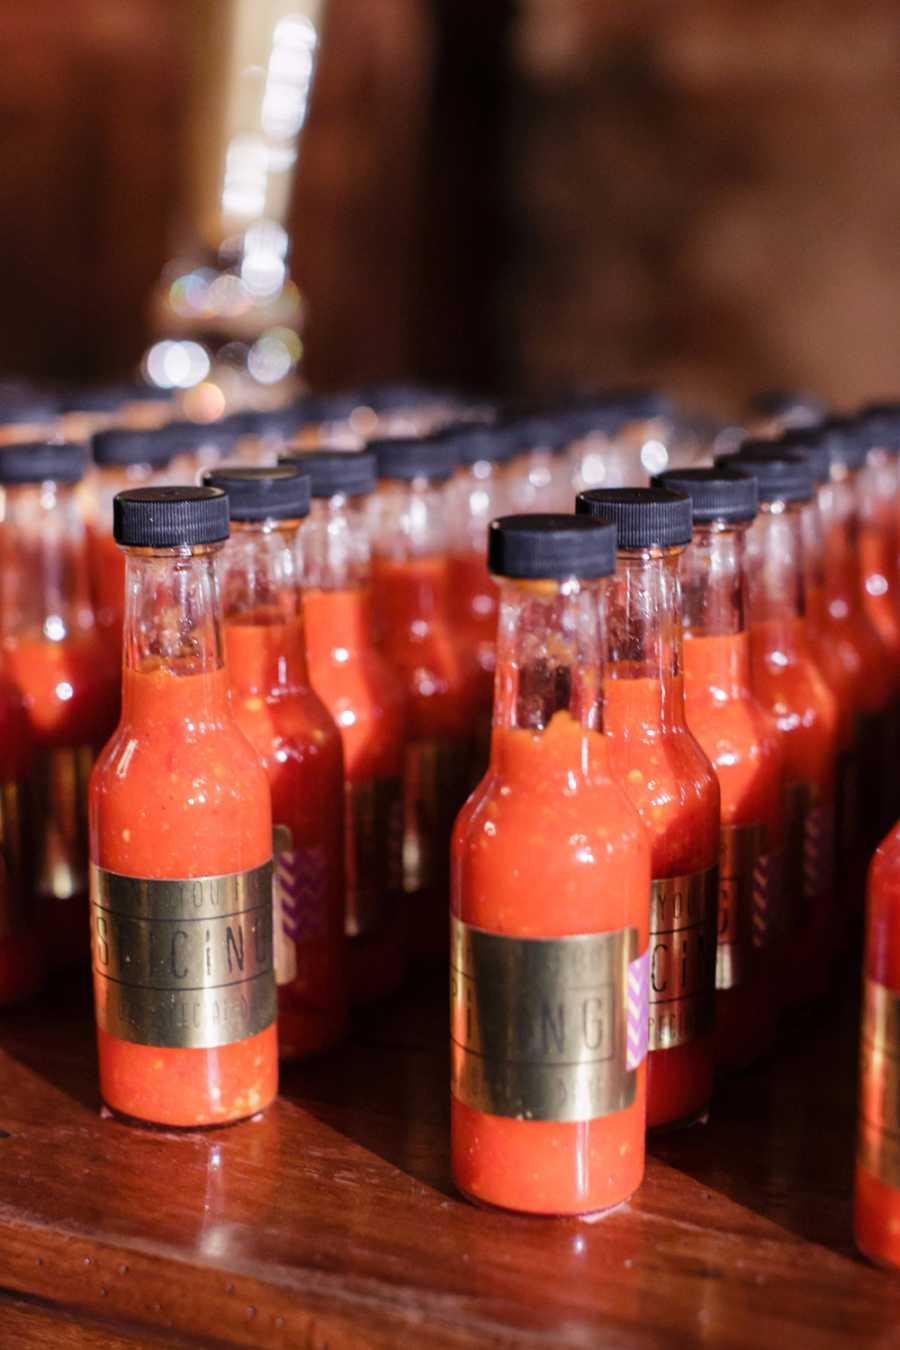 Spice up your life: little peppers as a souvenir